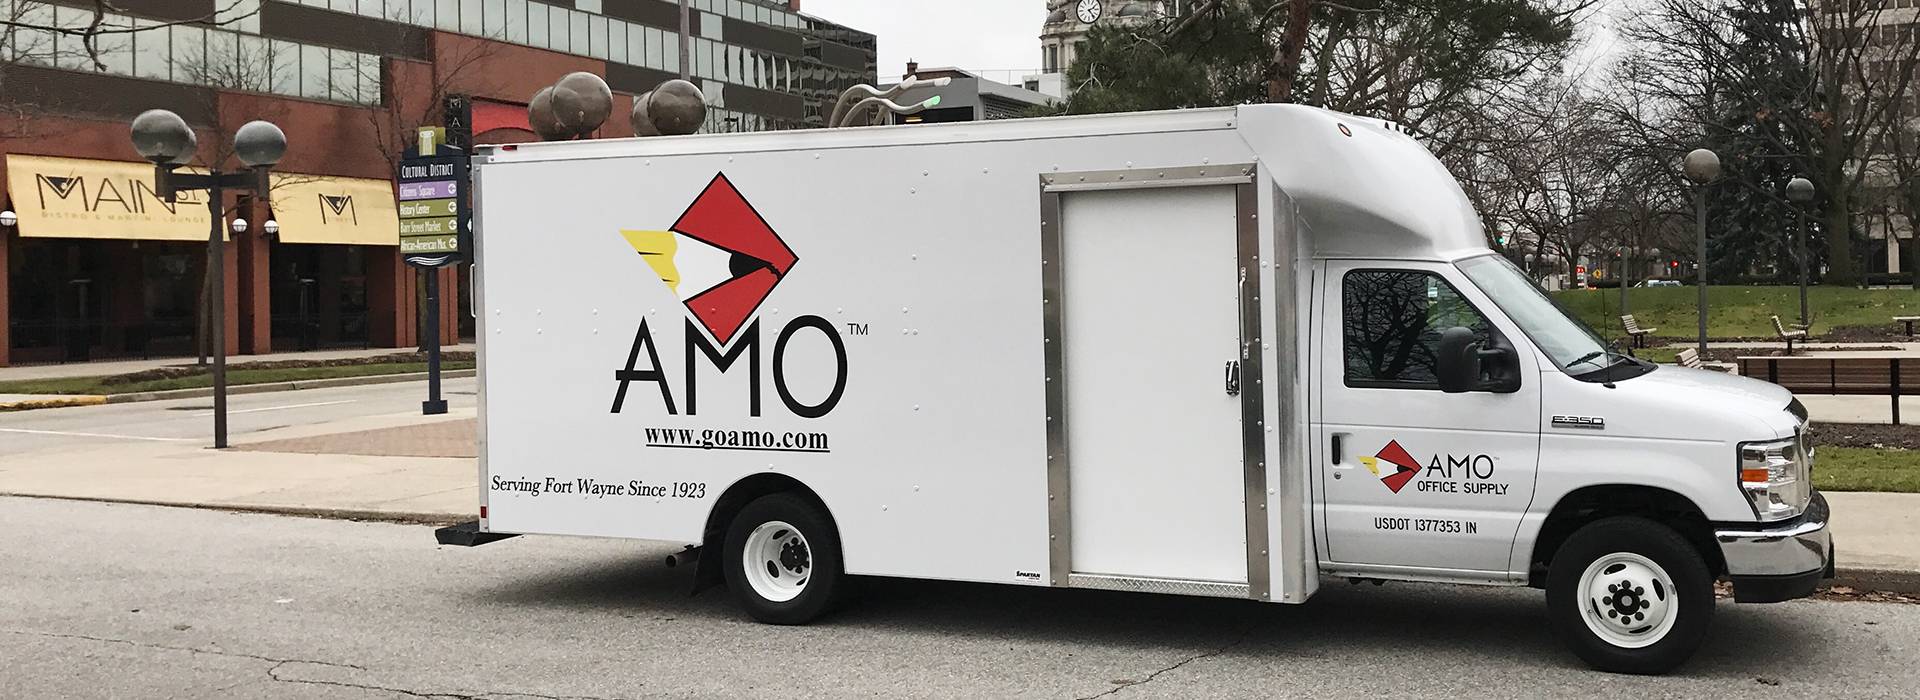 Image of AMO Office Supply Truck Truck for why choose AMO